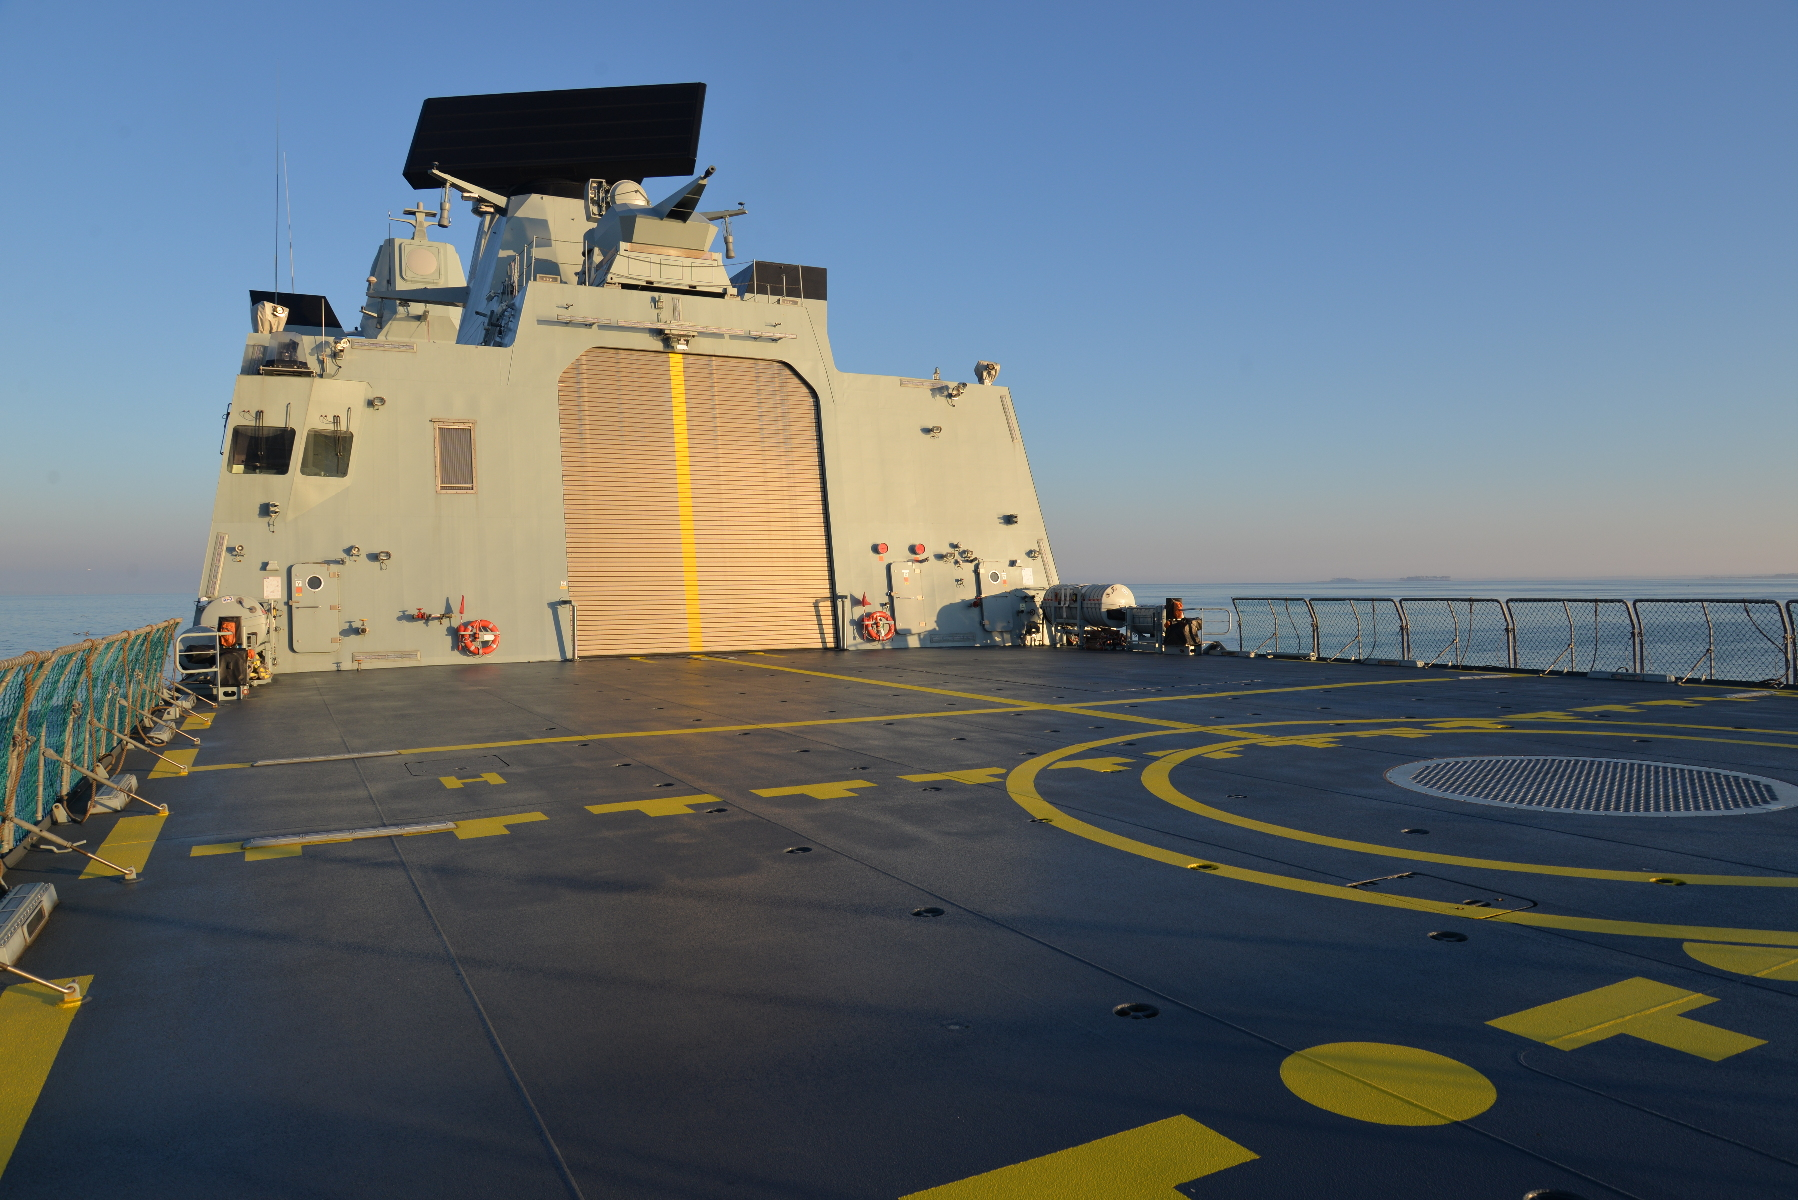 The large flight deck is limited to aircraft of 20,000 pounds -- big enough for EH-101 and NH-90 helicopters. The flight control station is at left.